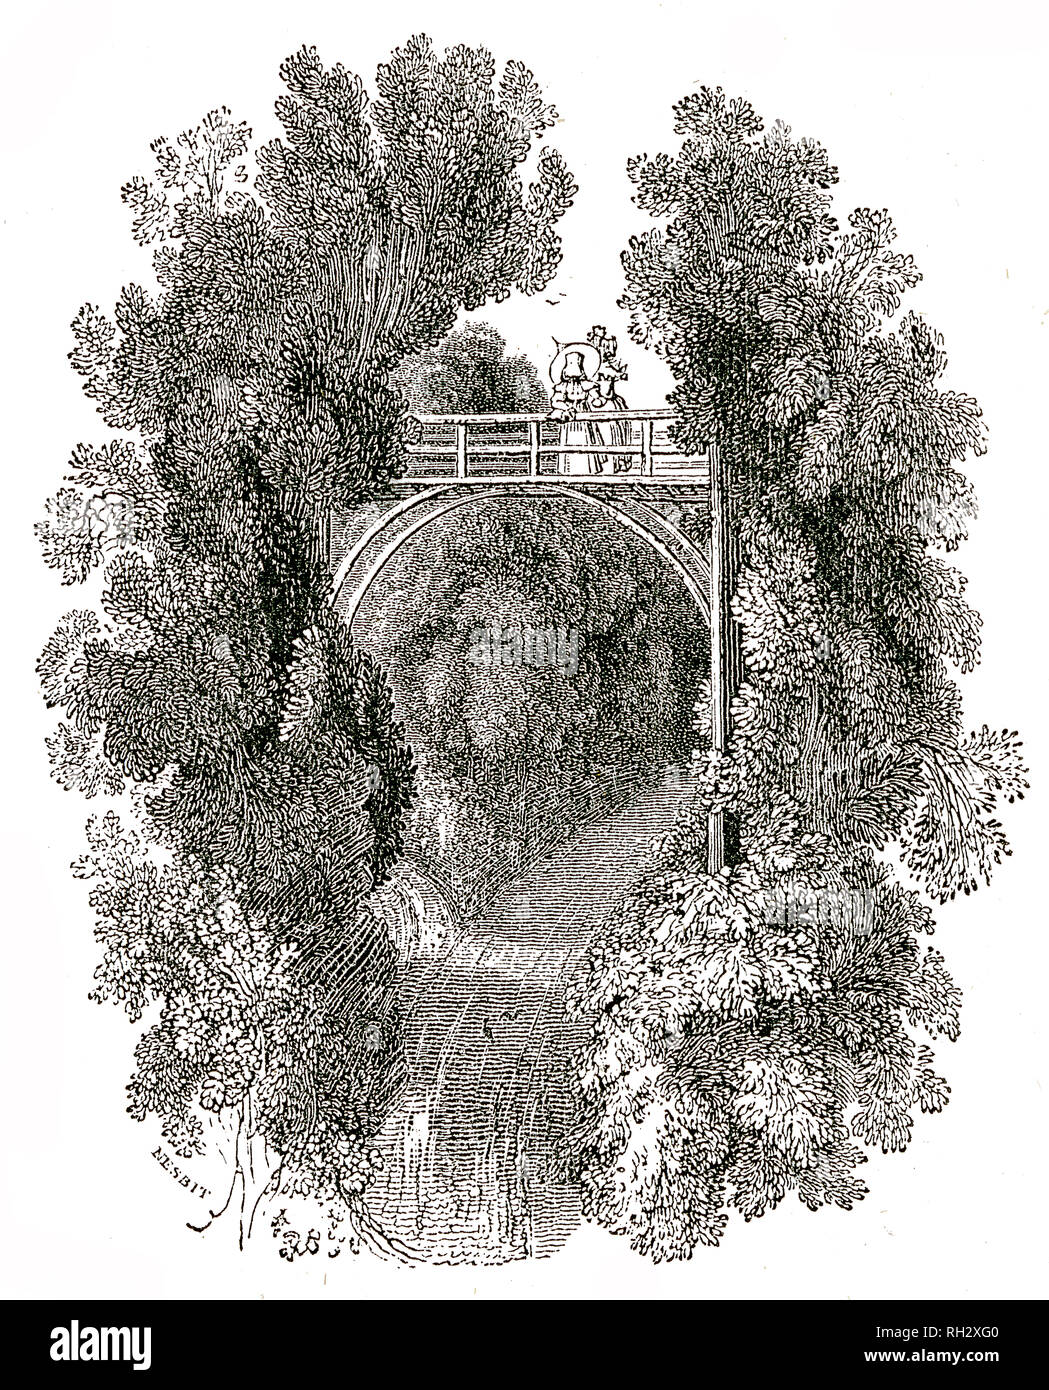 Taken From 'The Natural History of Selborne' By The Rev Gilbert White, 1875 Edition - Stock Image